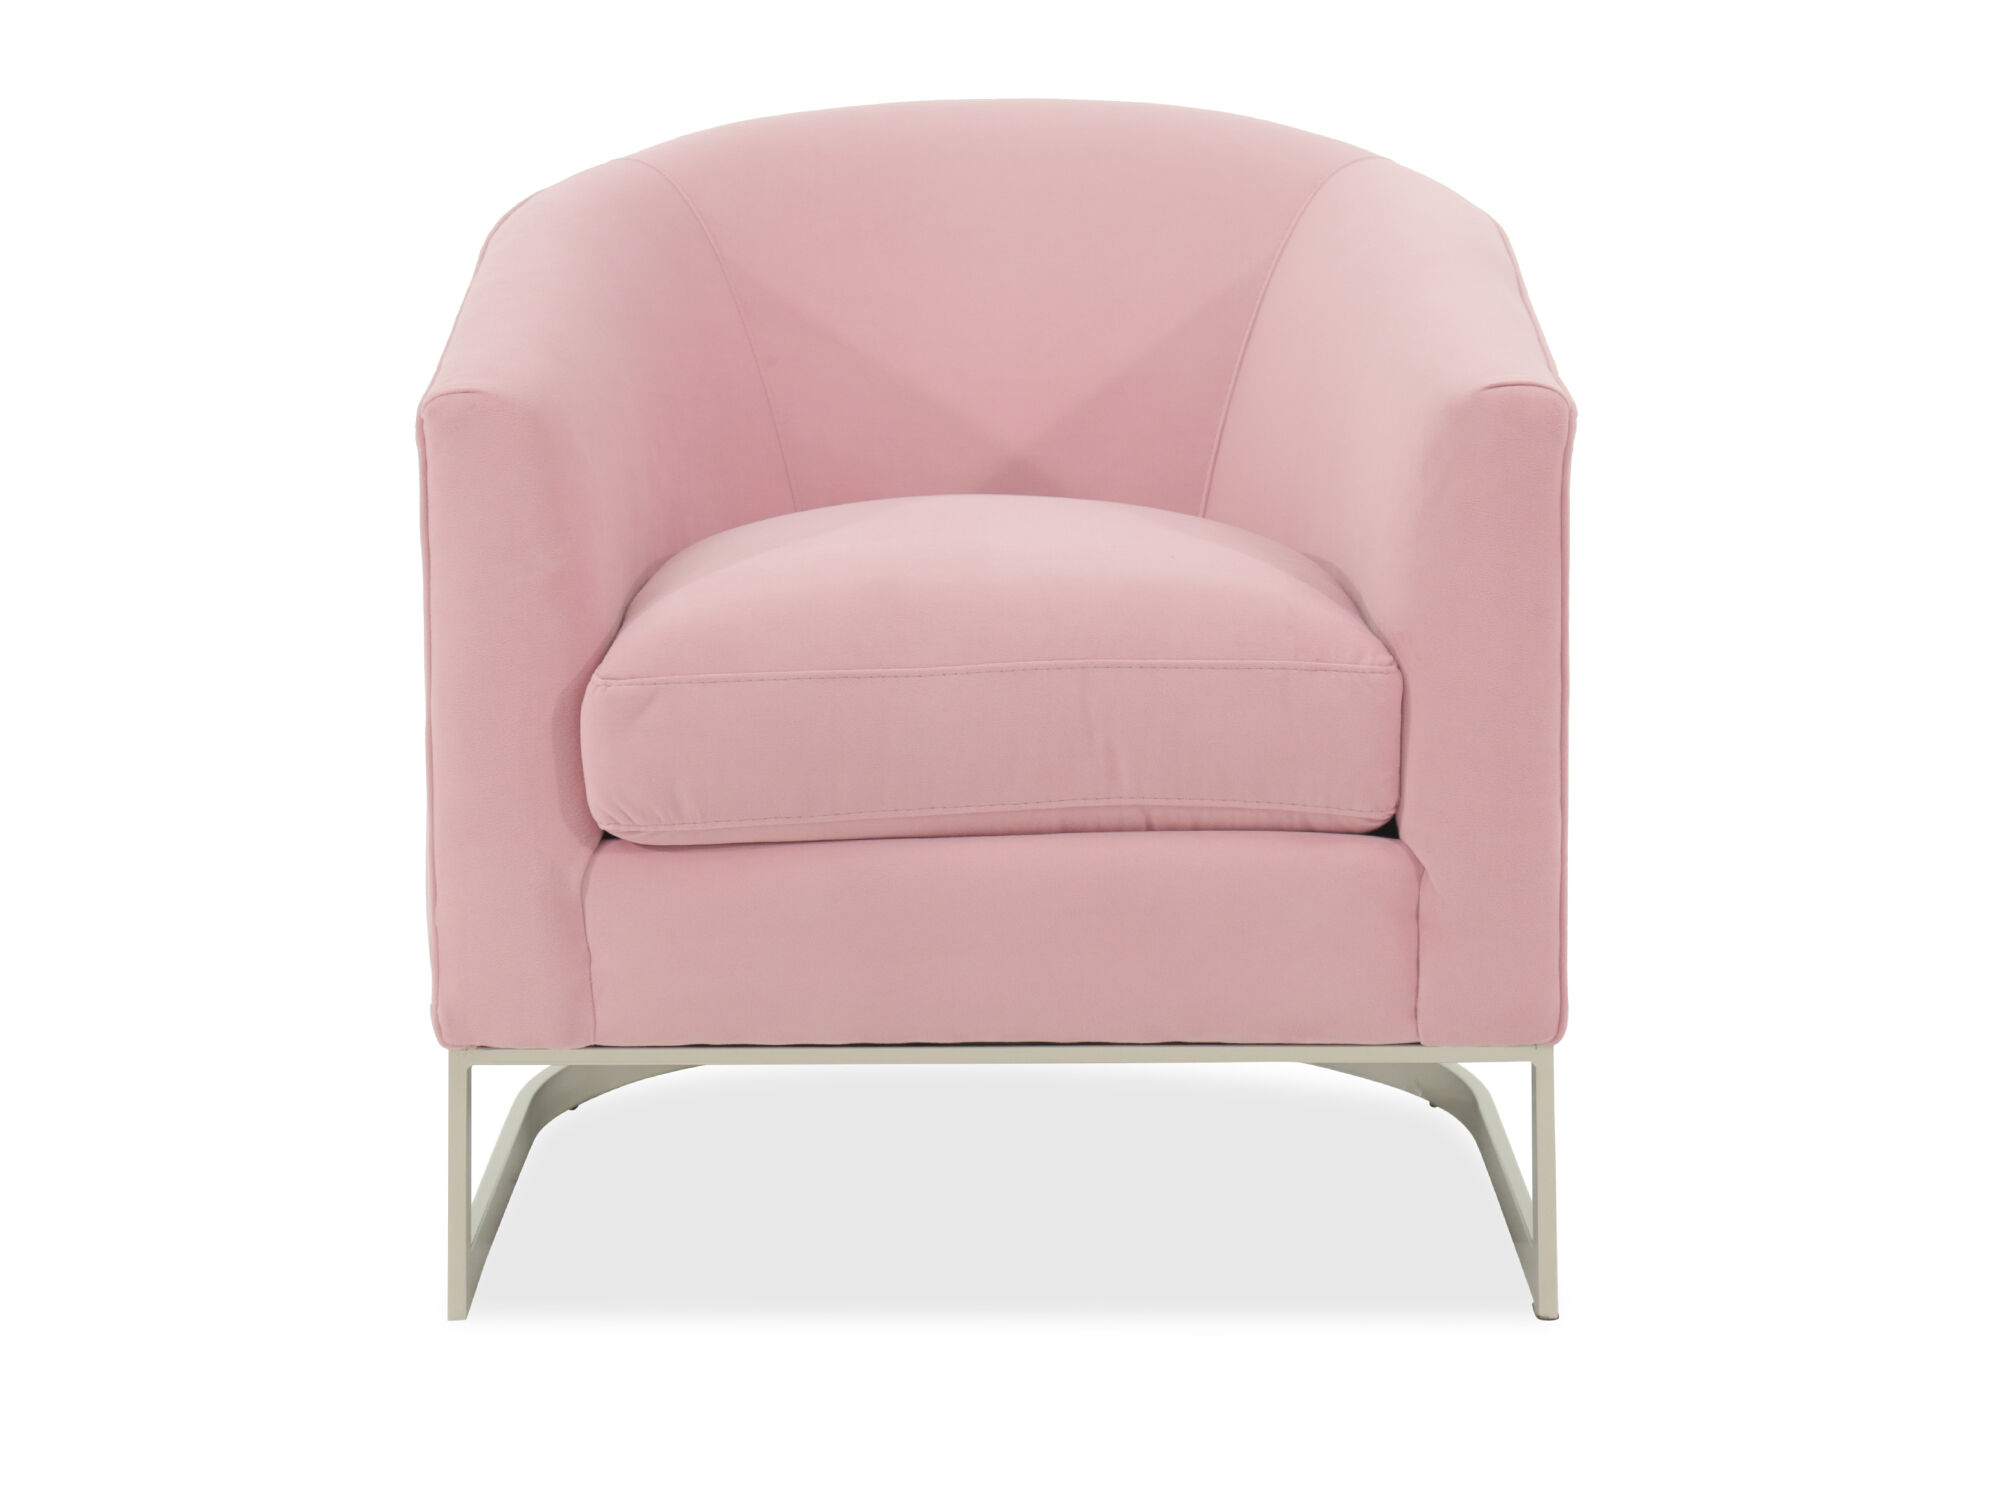 Images Mid Century Modern 31u0026quot; Accent Chair In Pink Mid Century Modern  31u0026quot; Accent Chair In Pink